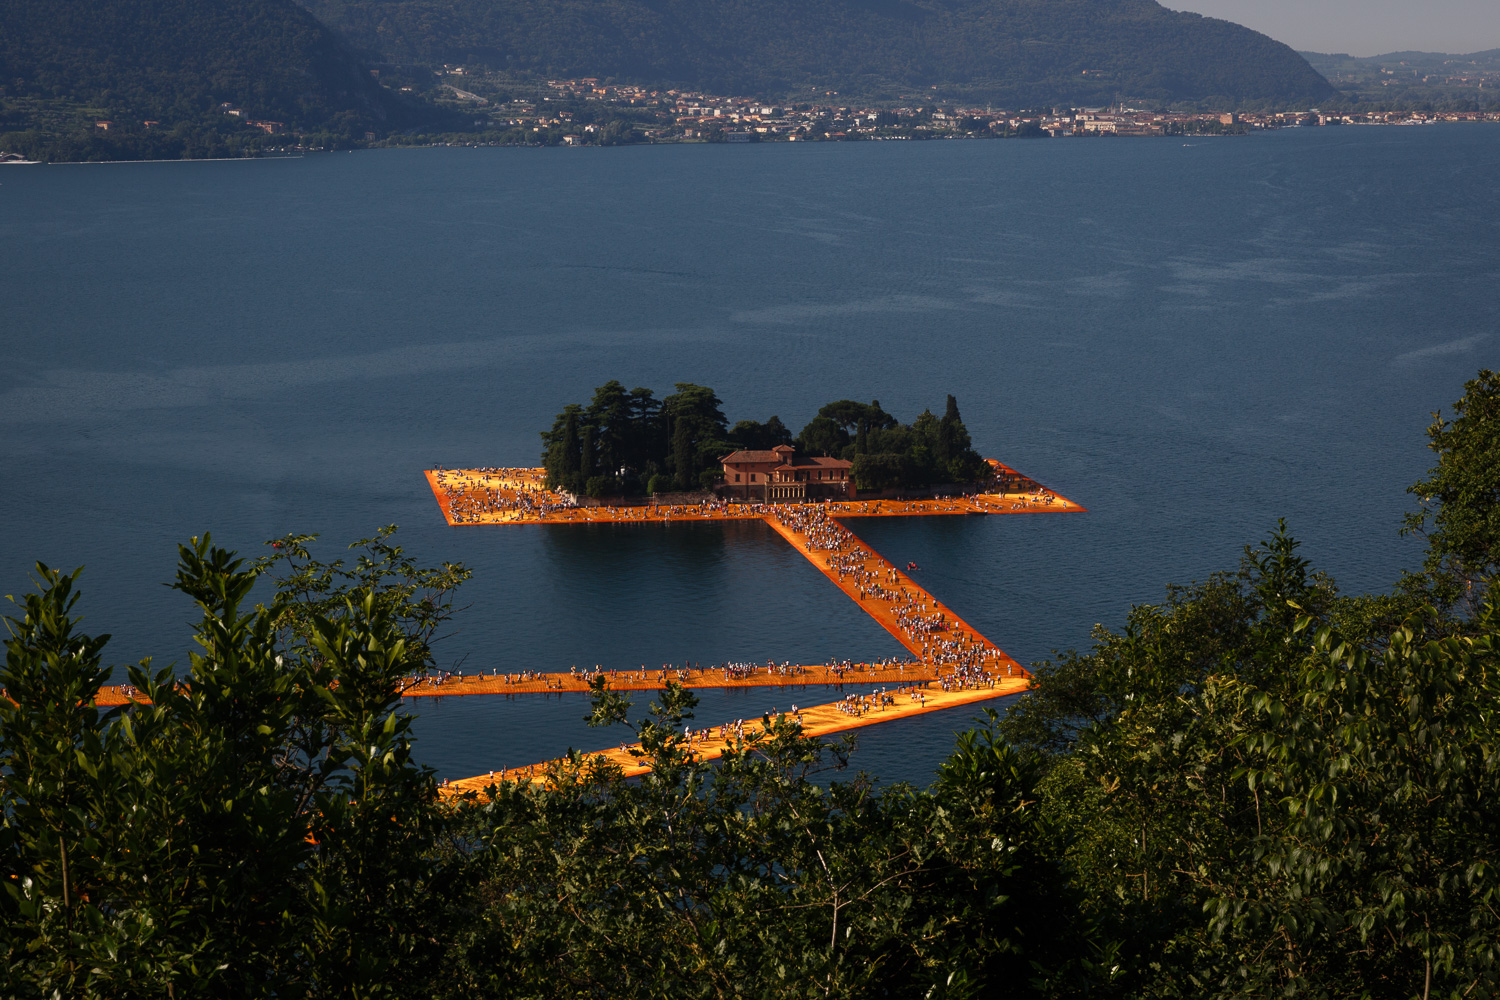 The Floating Piers - Isola di San Paolo from above